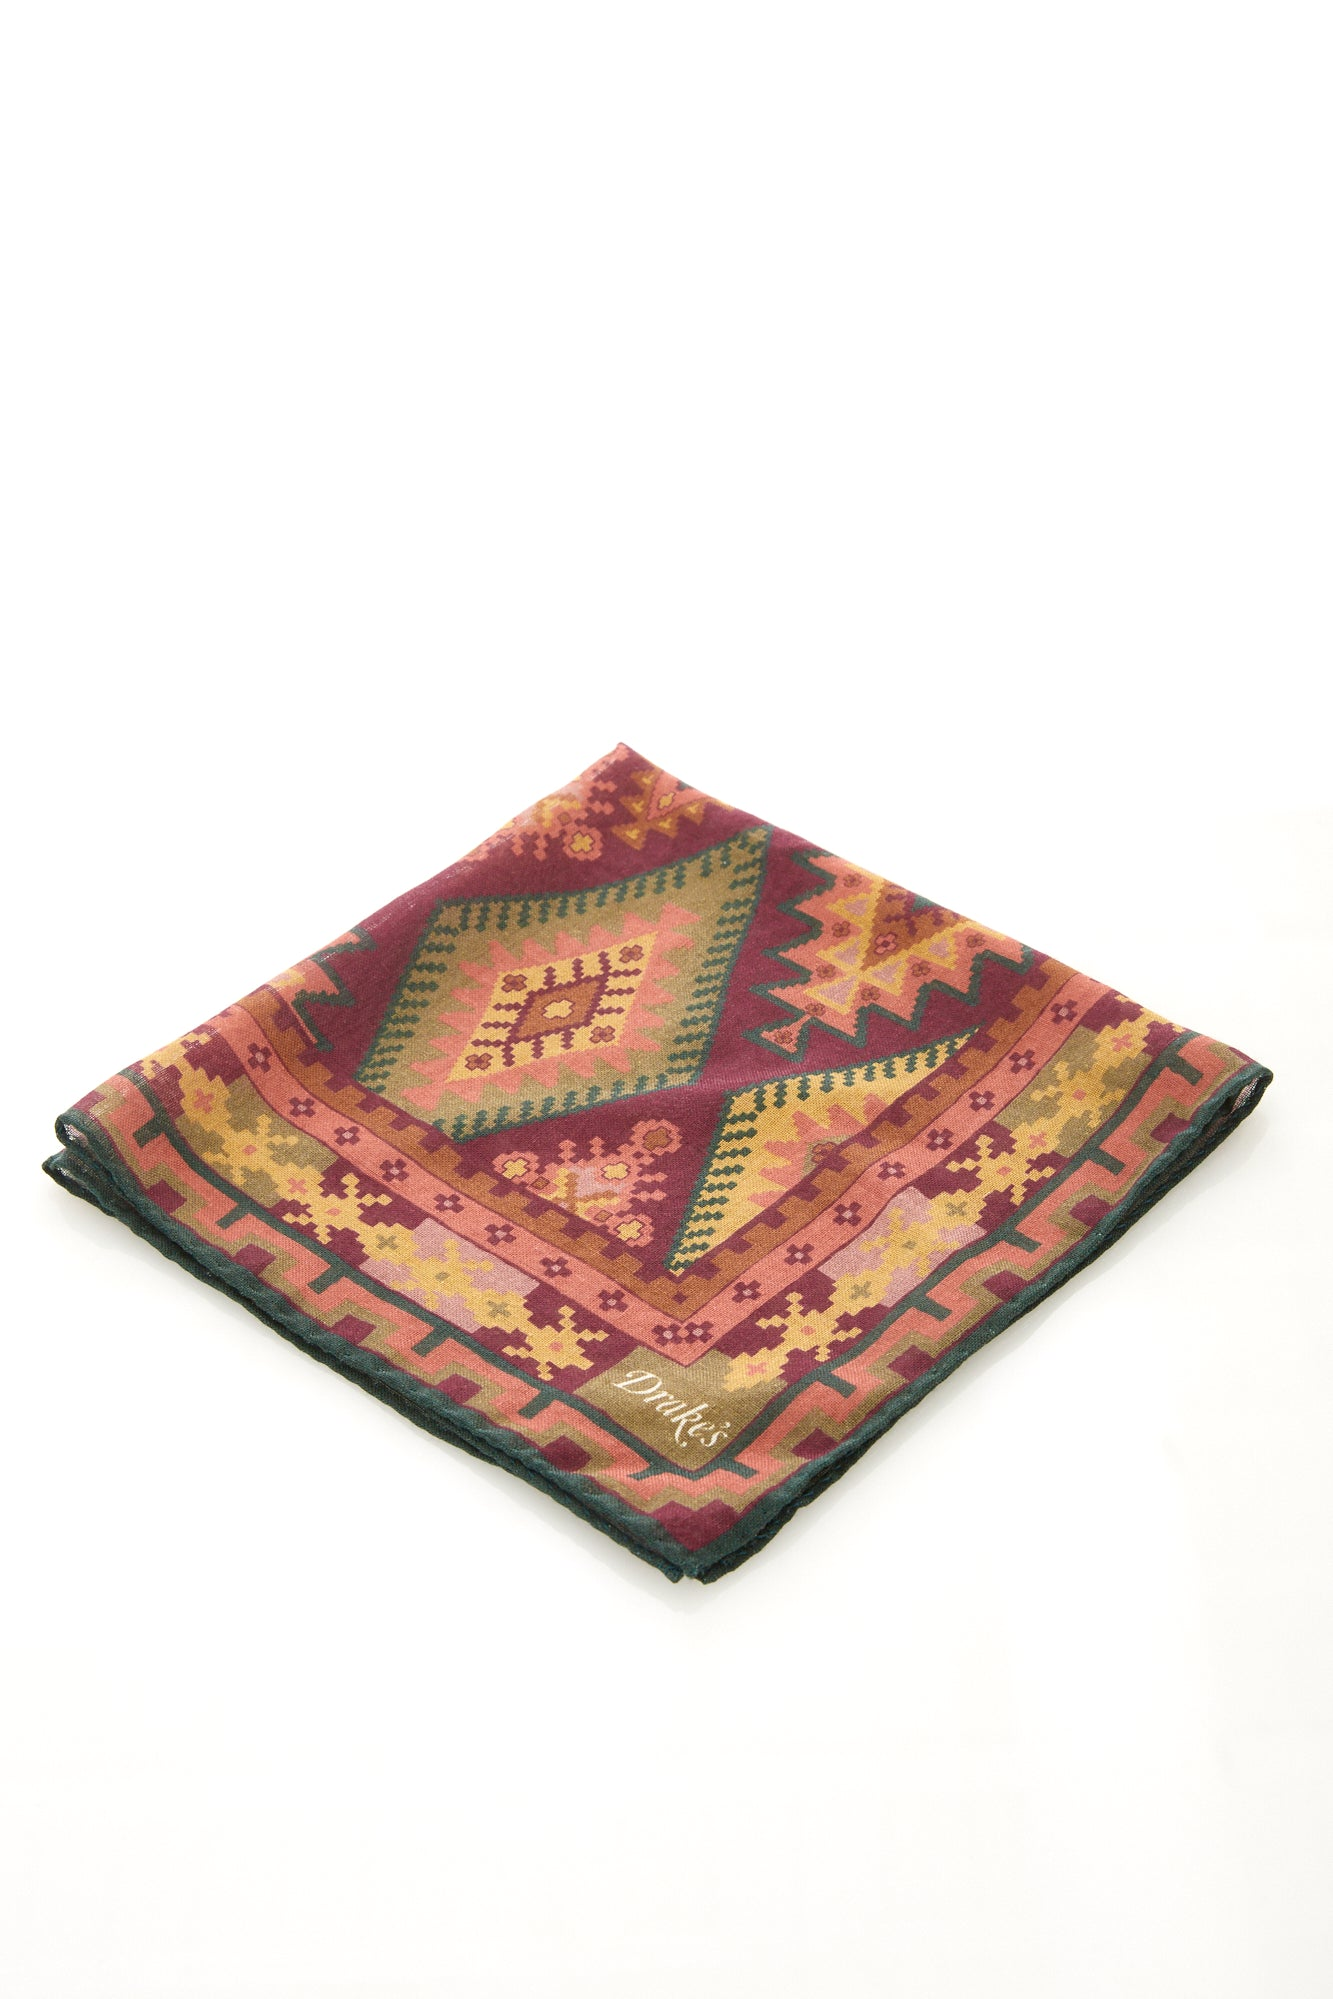 Drake's Purple Kilim Print Wool and Silk Pocket Square - Accessories - Drake's - LALONDE's